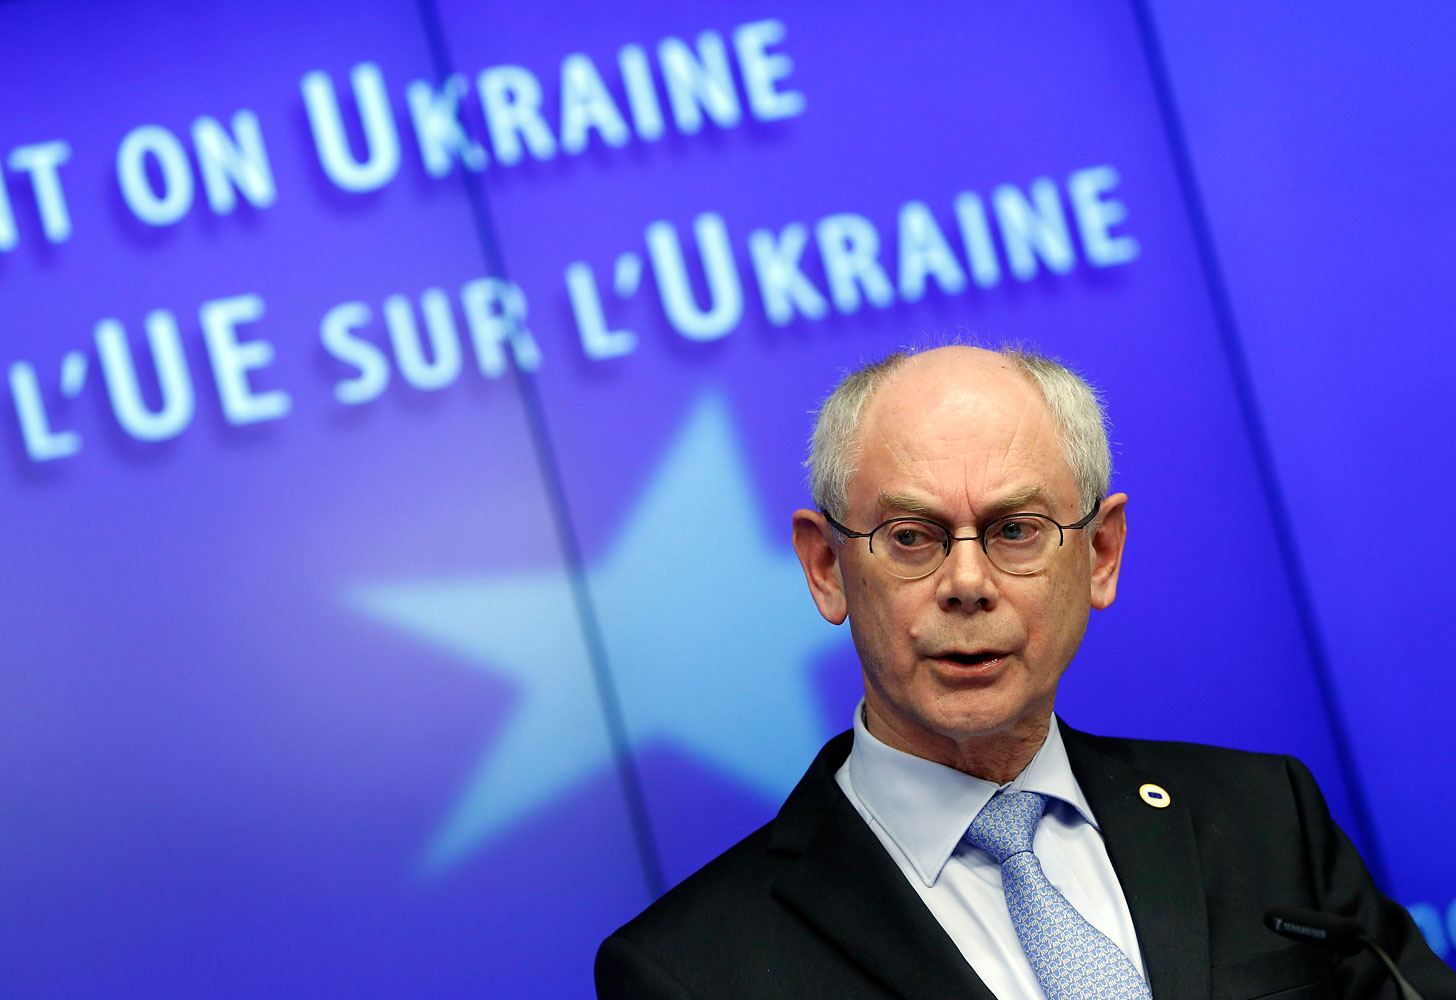 European Council President Herman Van Rompuy speaks at a news conference at the end of a European leaders emergency summit on Ukraine, in Brussels, on March 6, 2014